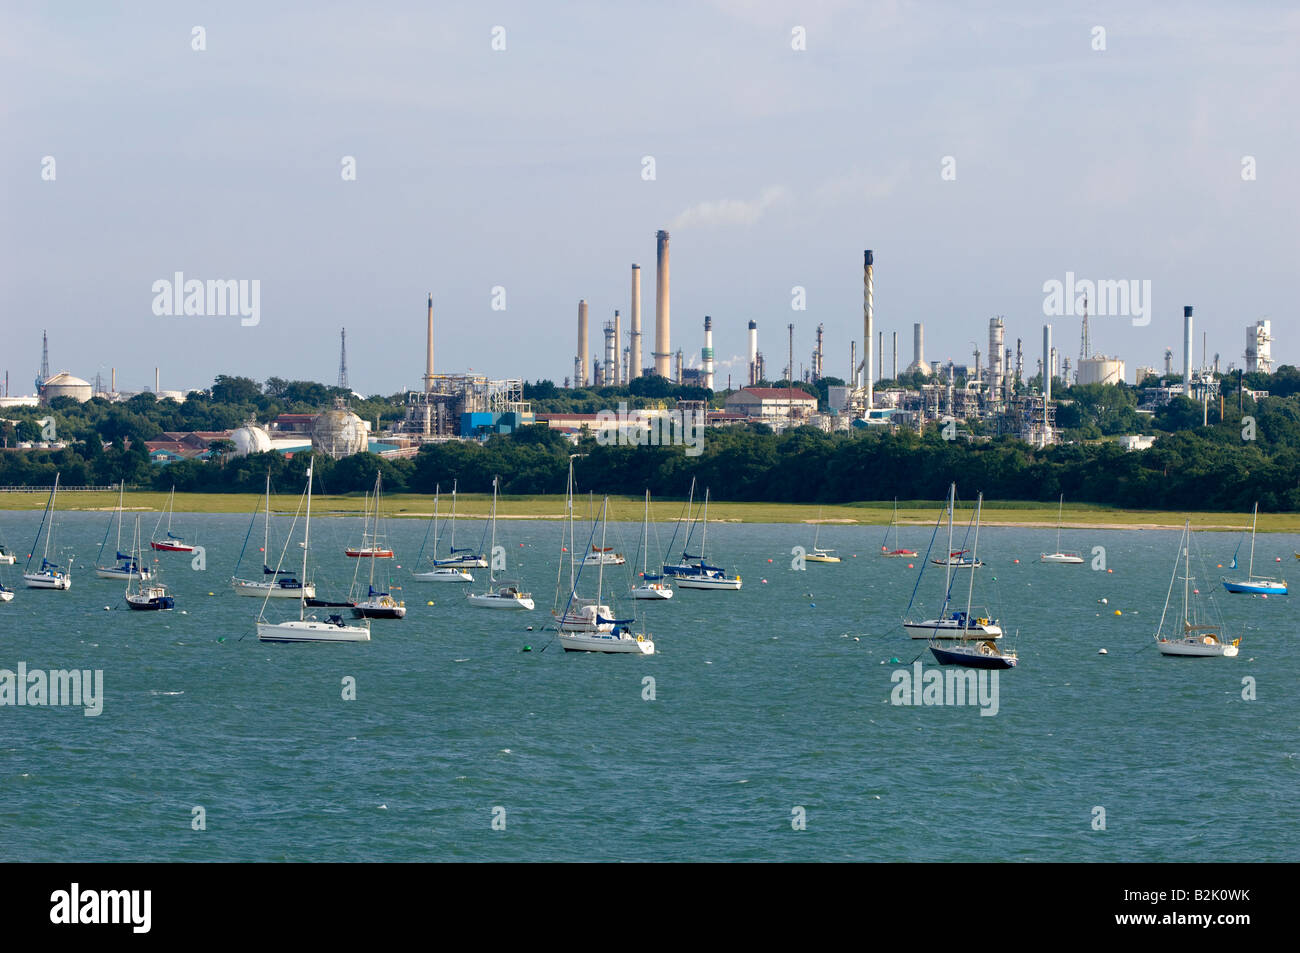 Yachts and boats in marina Southampton United Kingdom - Stock Image